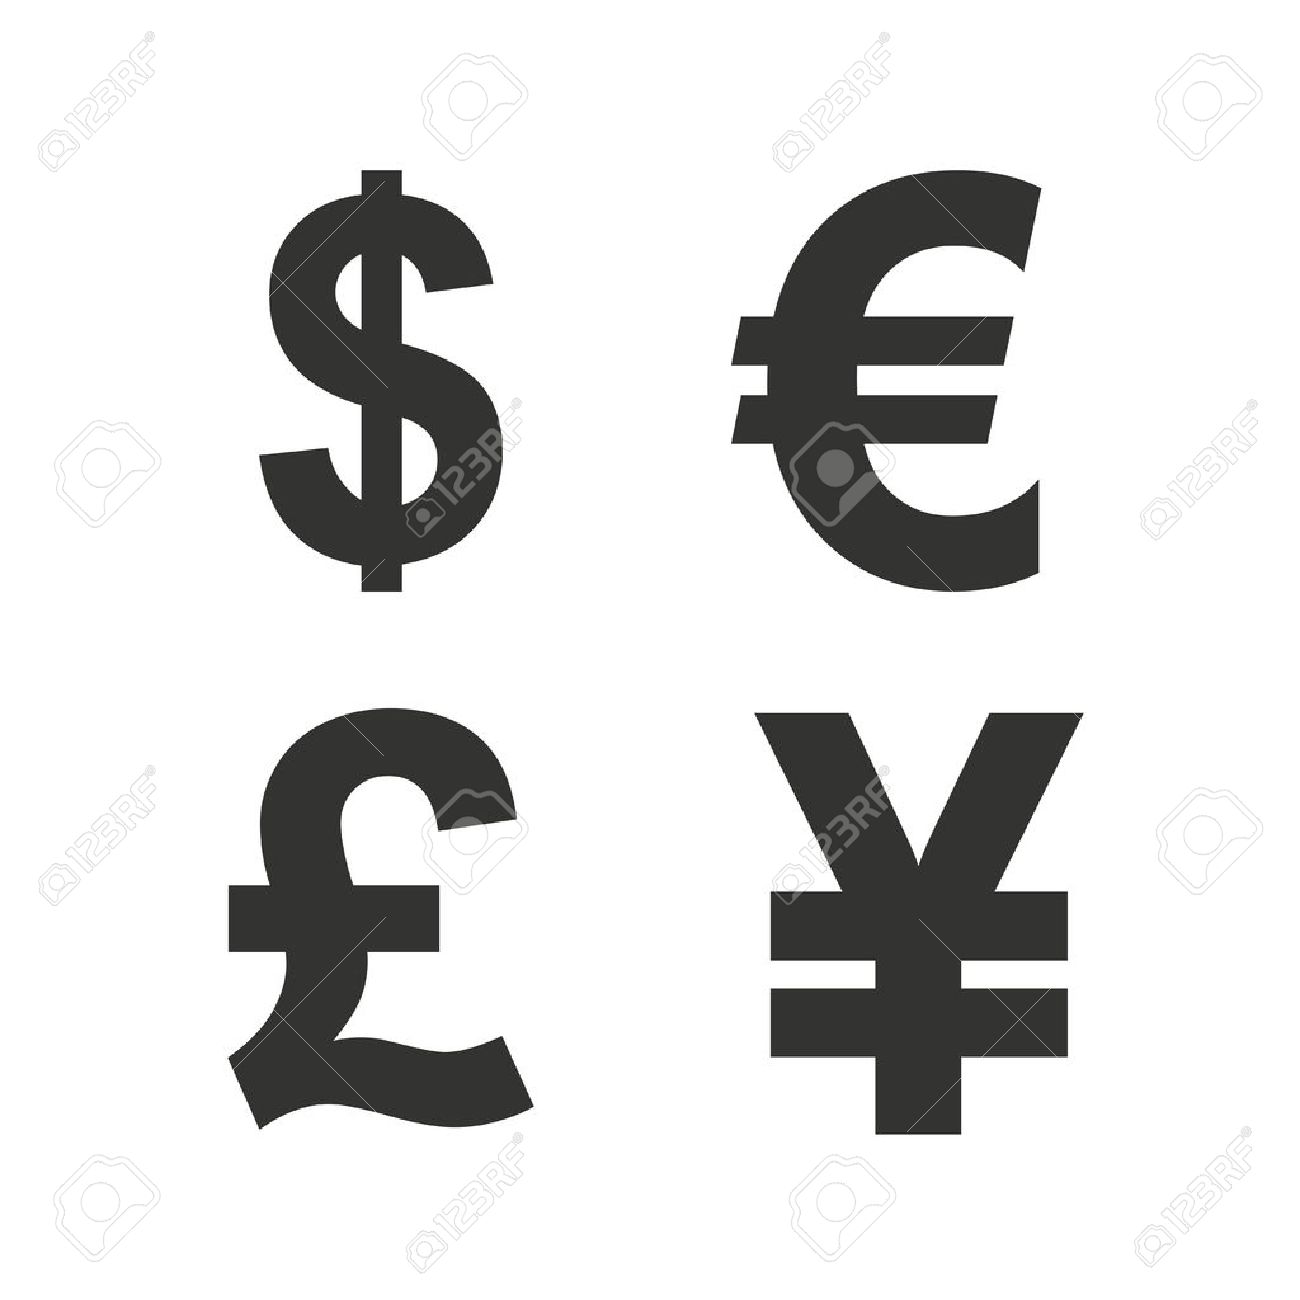 Euro Dollar Symbol Choice Image Meaning Of Text Symbols